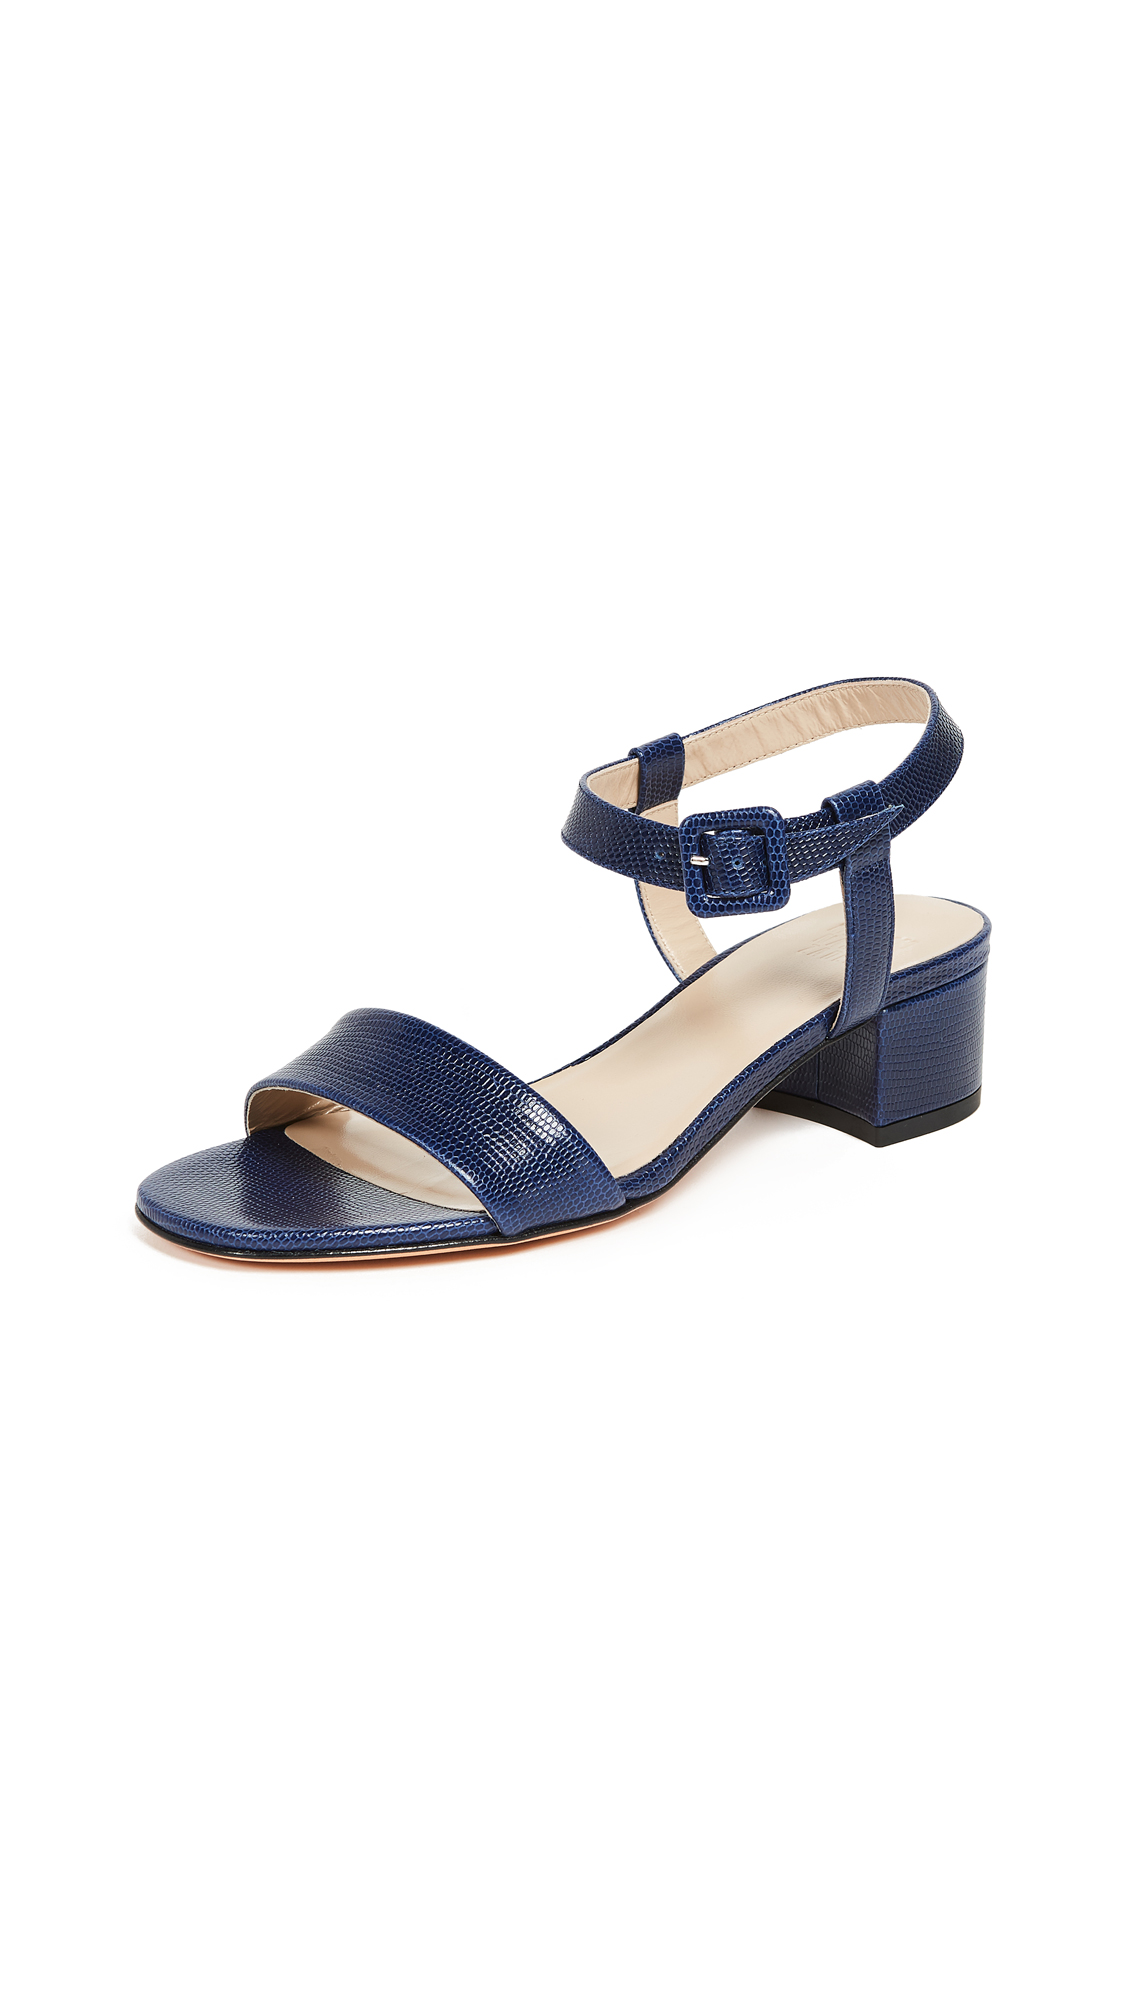 Maryam Nassir Zadeh Sophie Sandals - Navy Faux Lizard